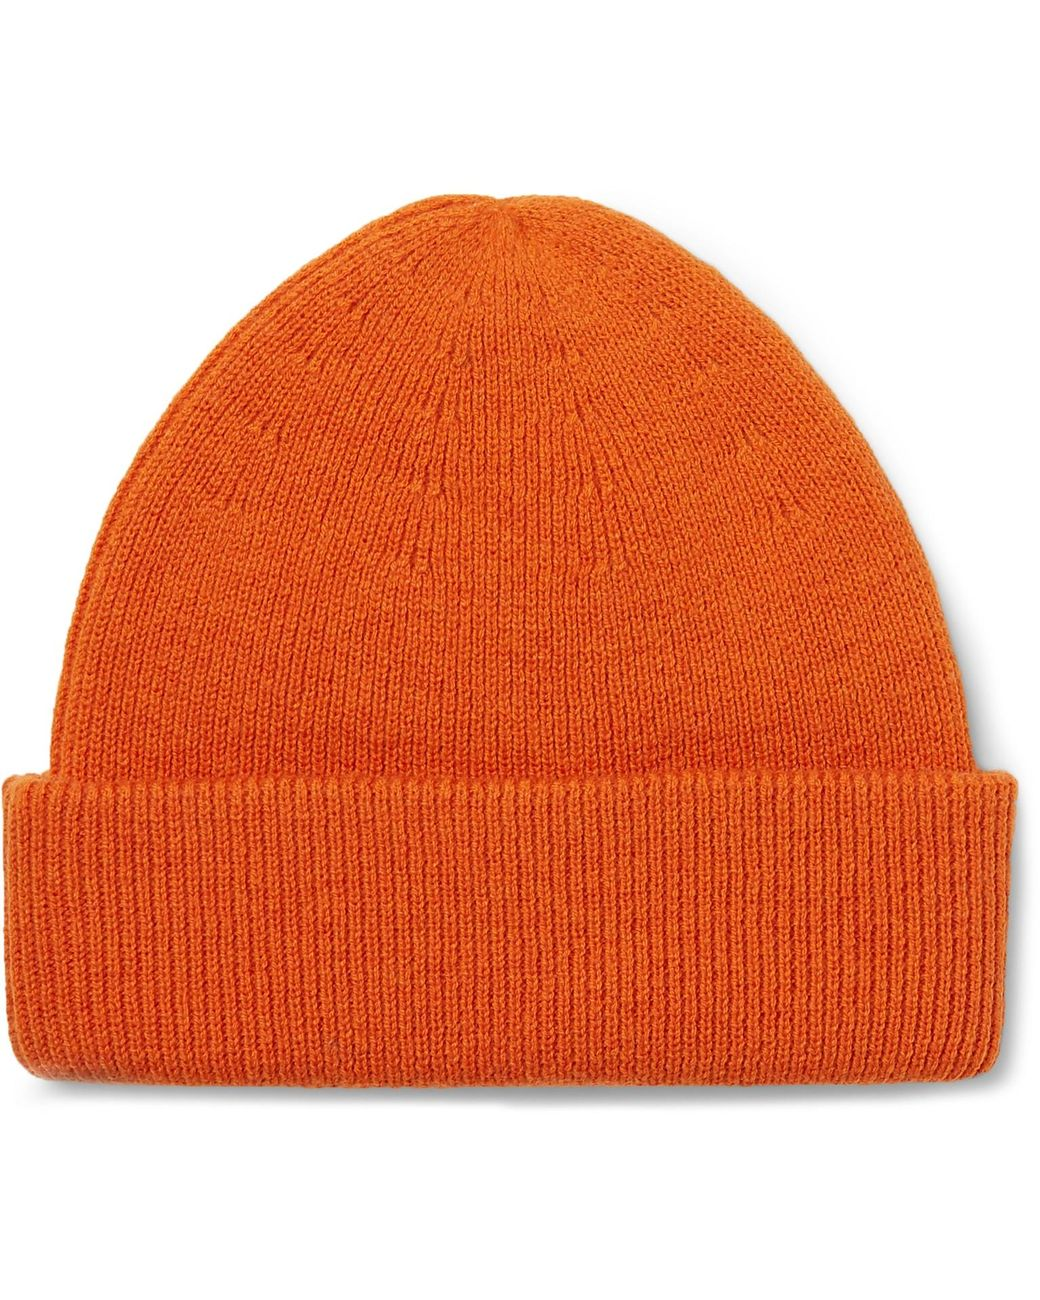 babfd0649 Men's Orange Cap Of Courage Ribbed Merino Wool Beanie